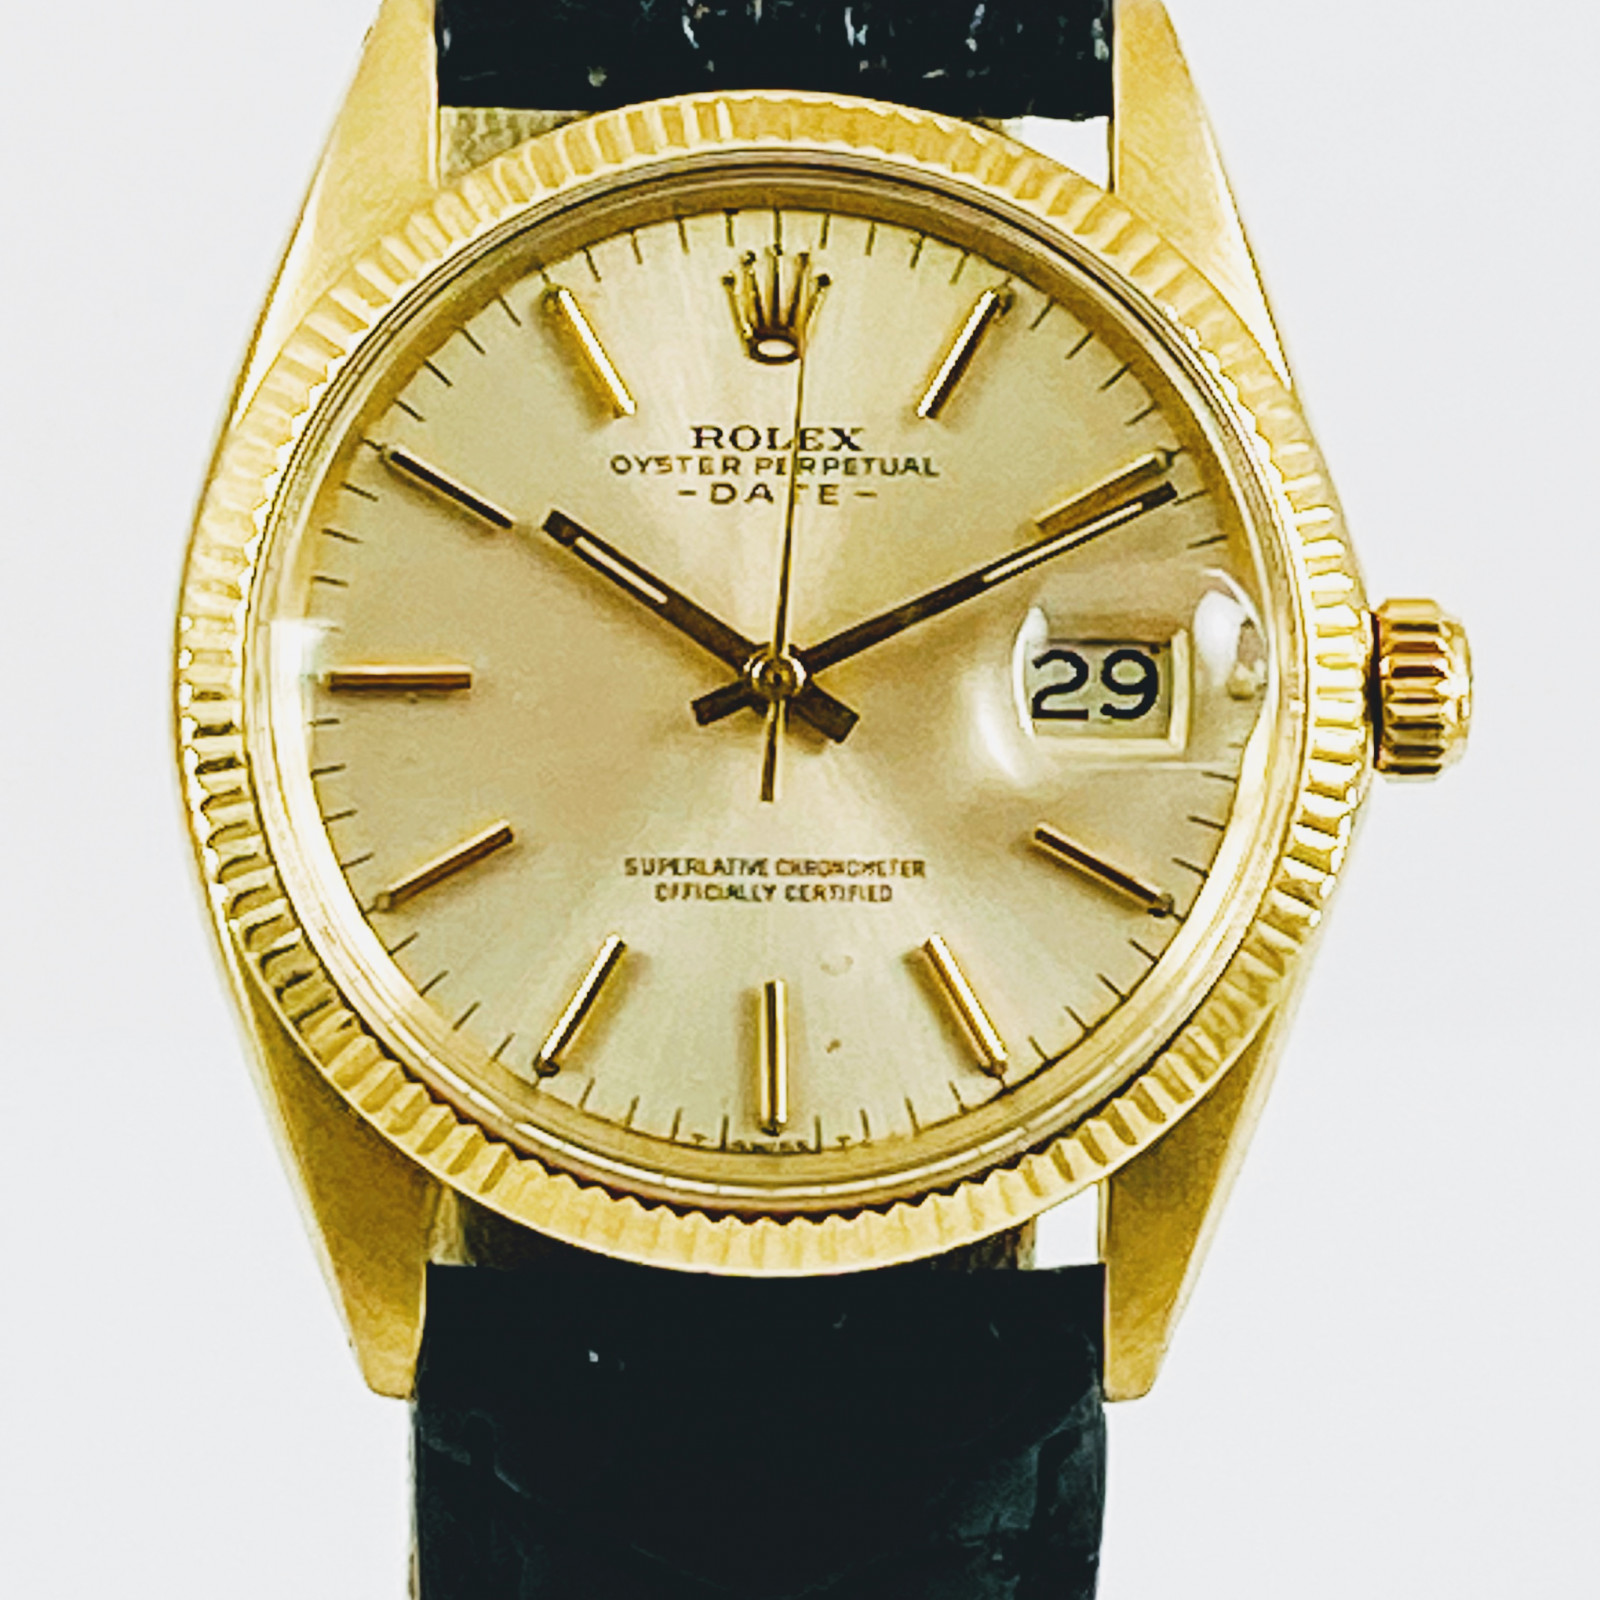 Rolex 1503 Date 14KT Solid Gold